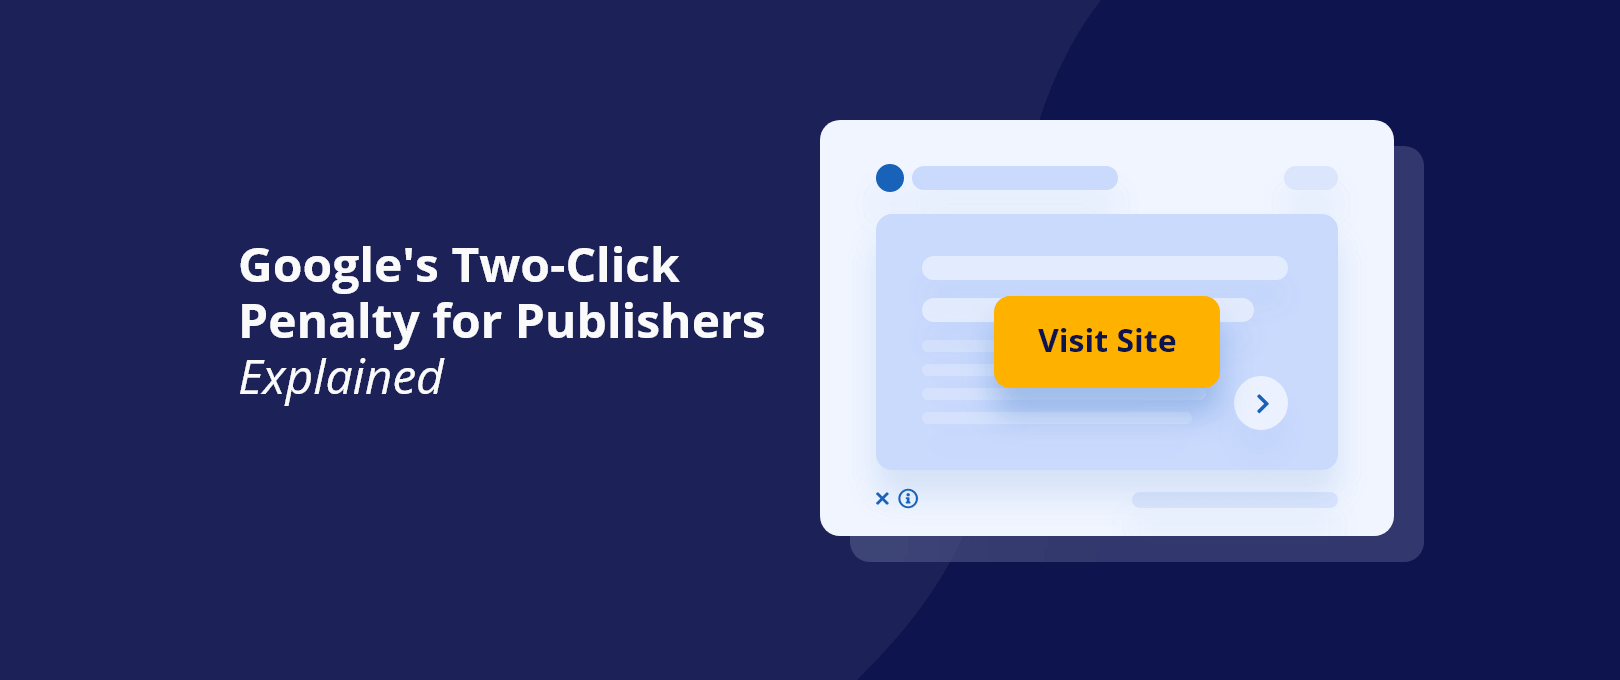 Google's Two-Click Penalty for Publishers Explained